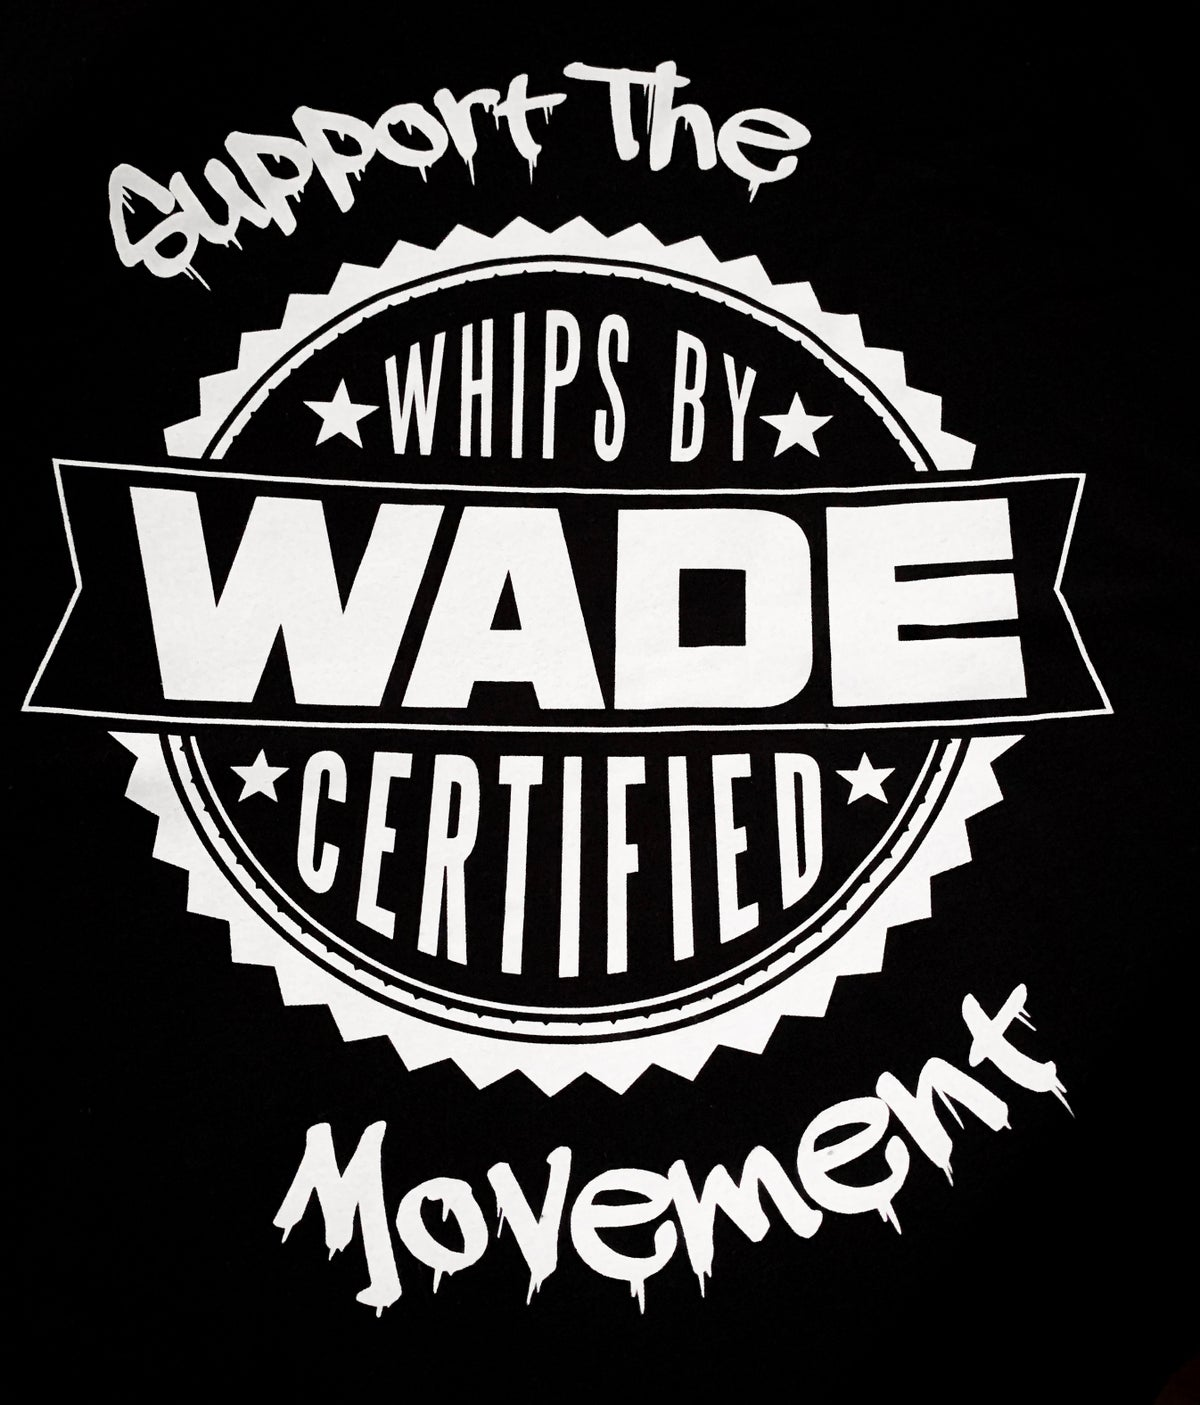 Image of 2019 Support The Movement Tee